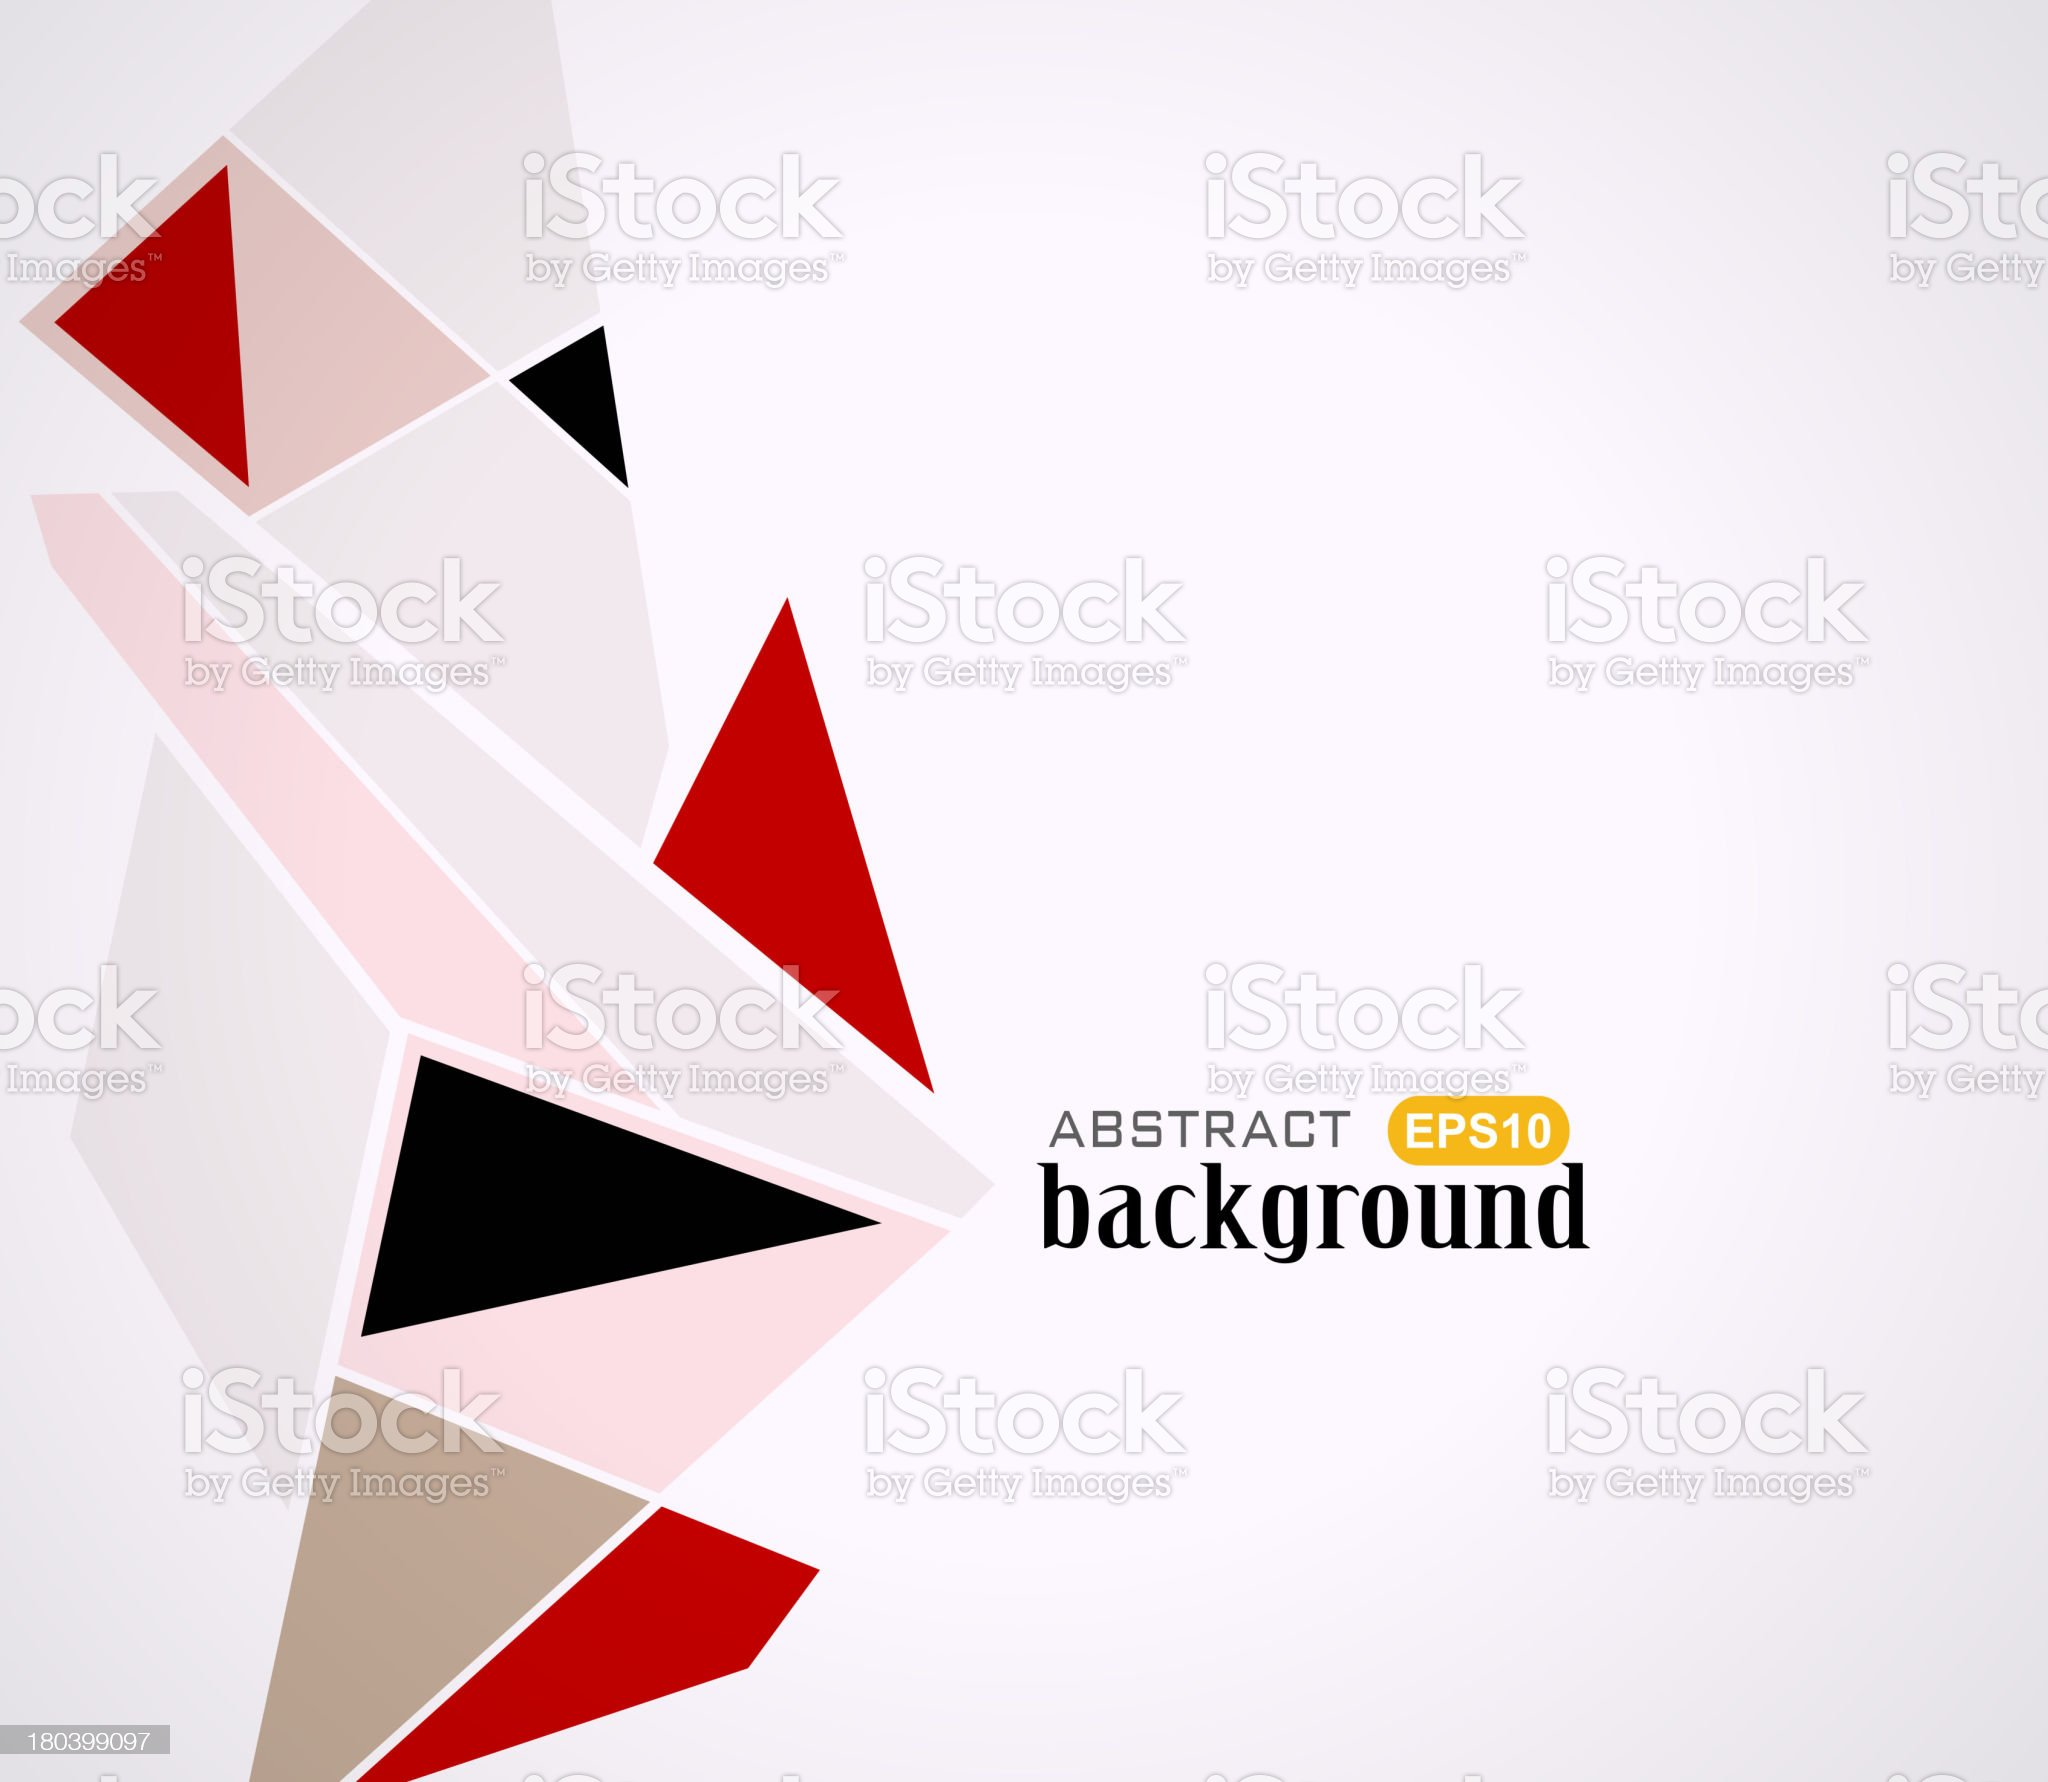 abstract pattern background royalty-free stock vector art